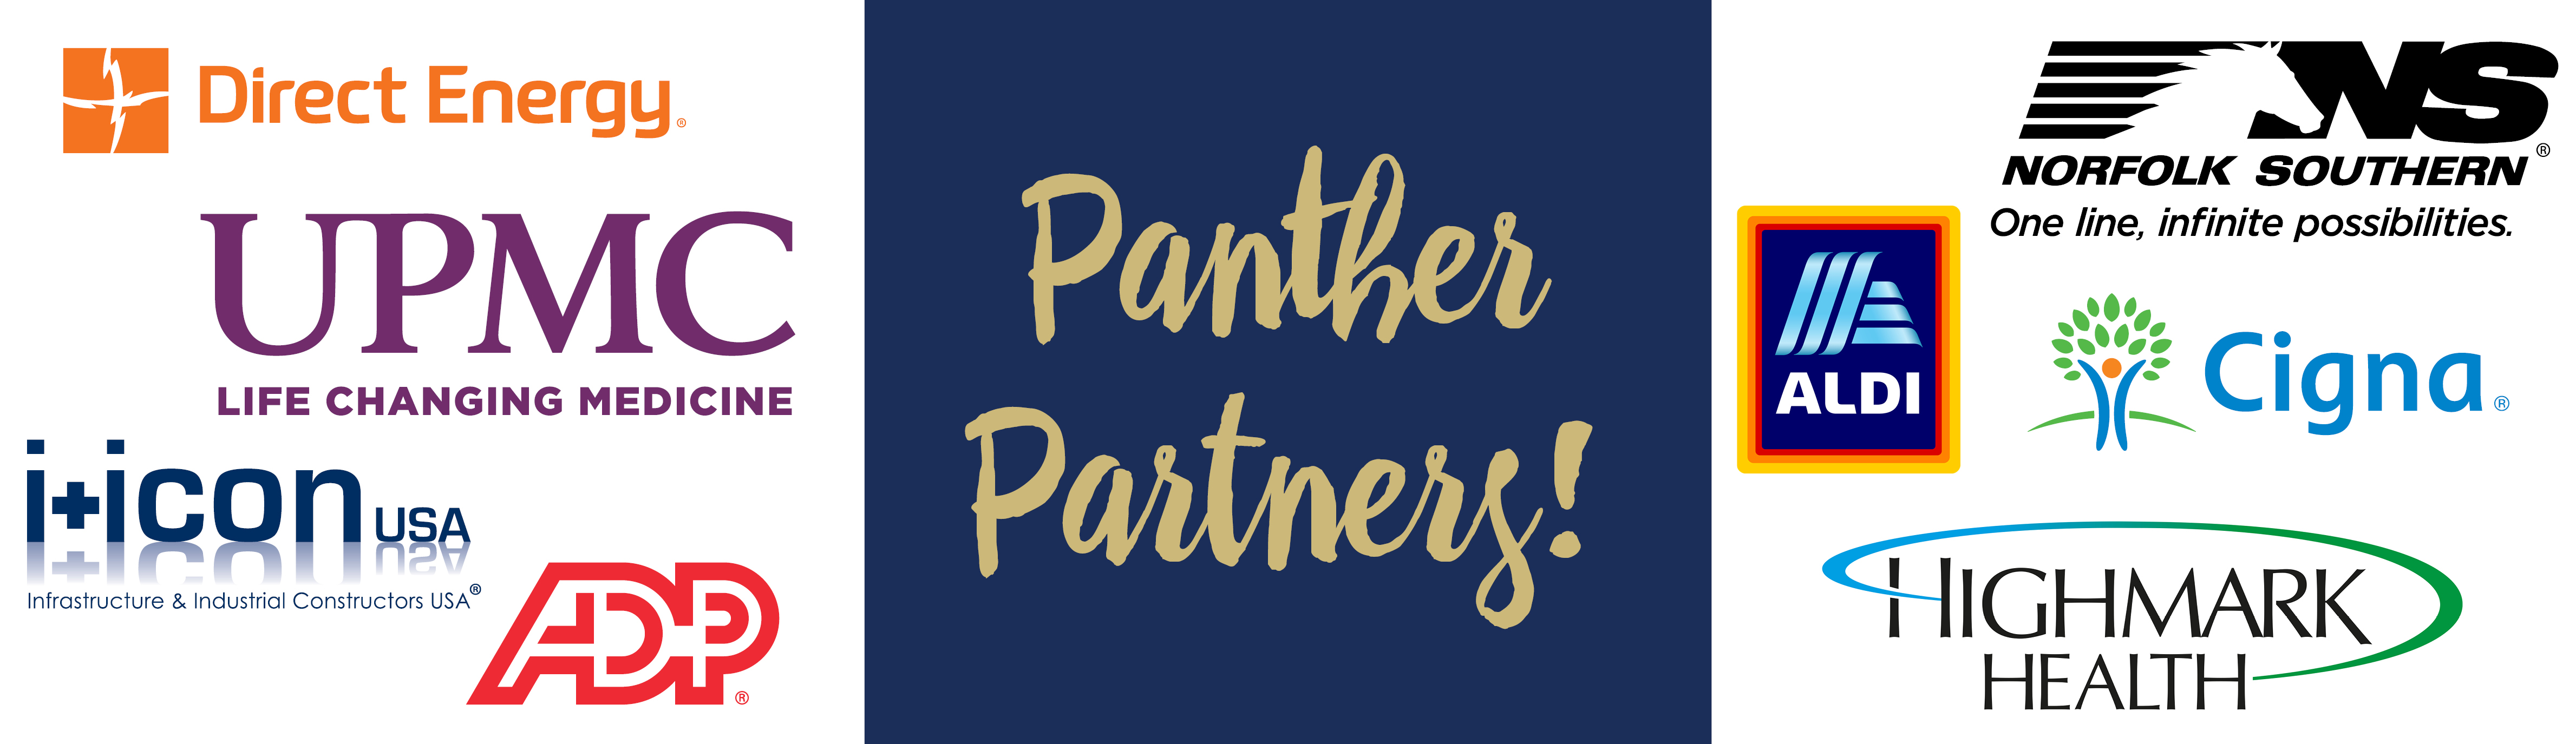 Panther-Partners